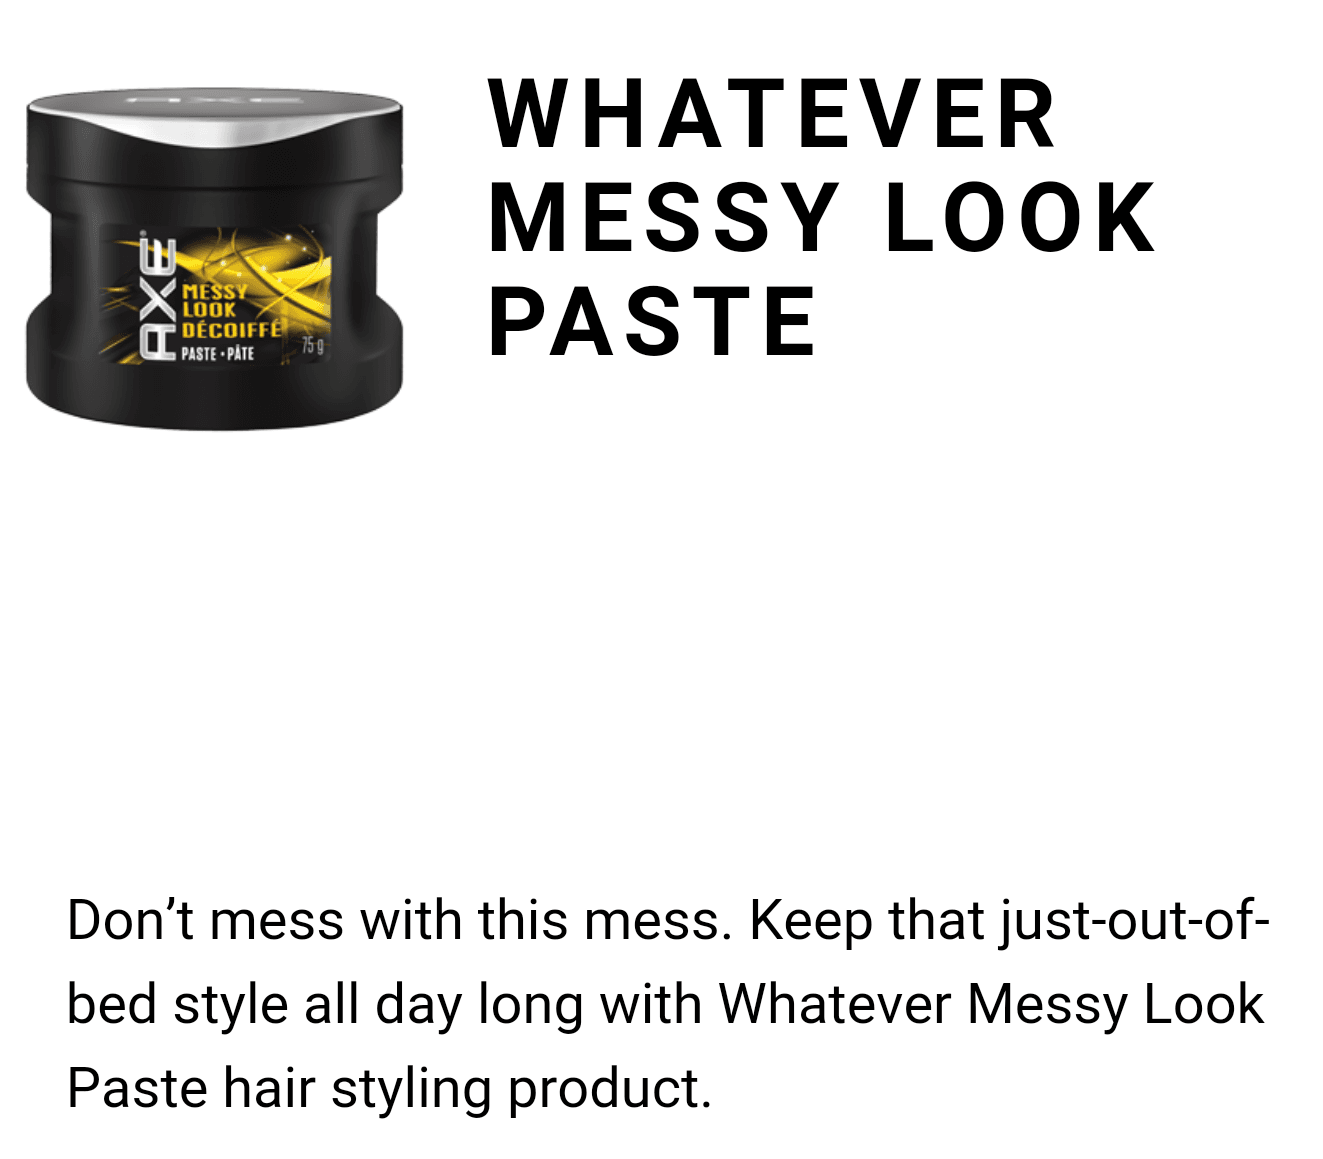 AXEGOTSTYLE-Whatever-Messy-Look-Paste (1)